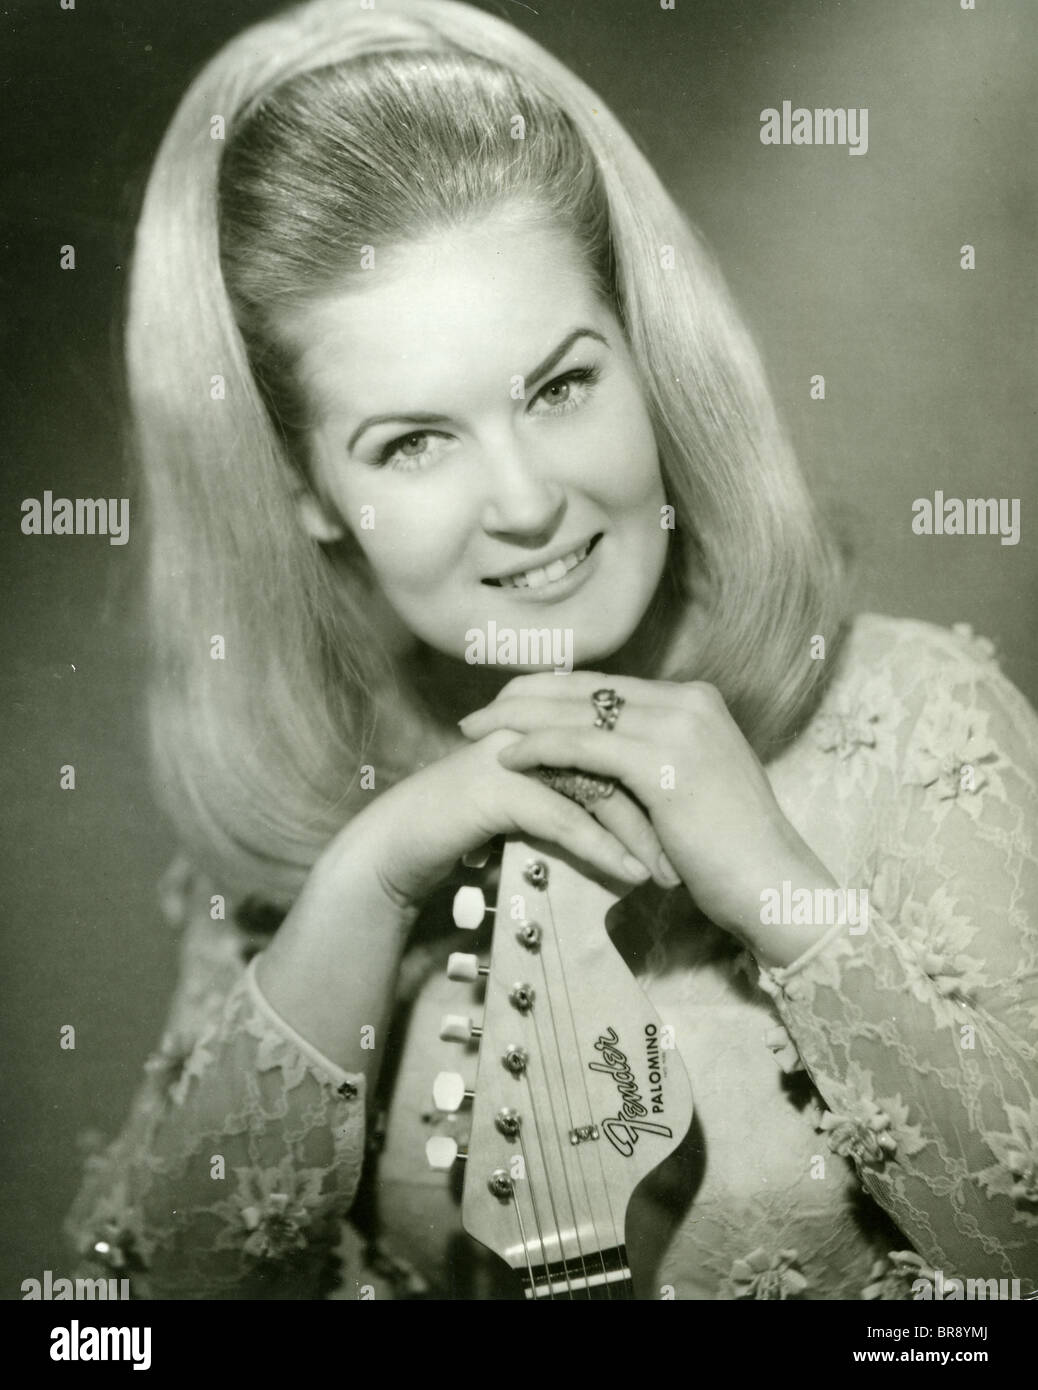 LYNN ANDERSON   US Country and Western musician - Stock Image